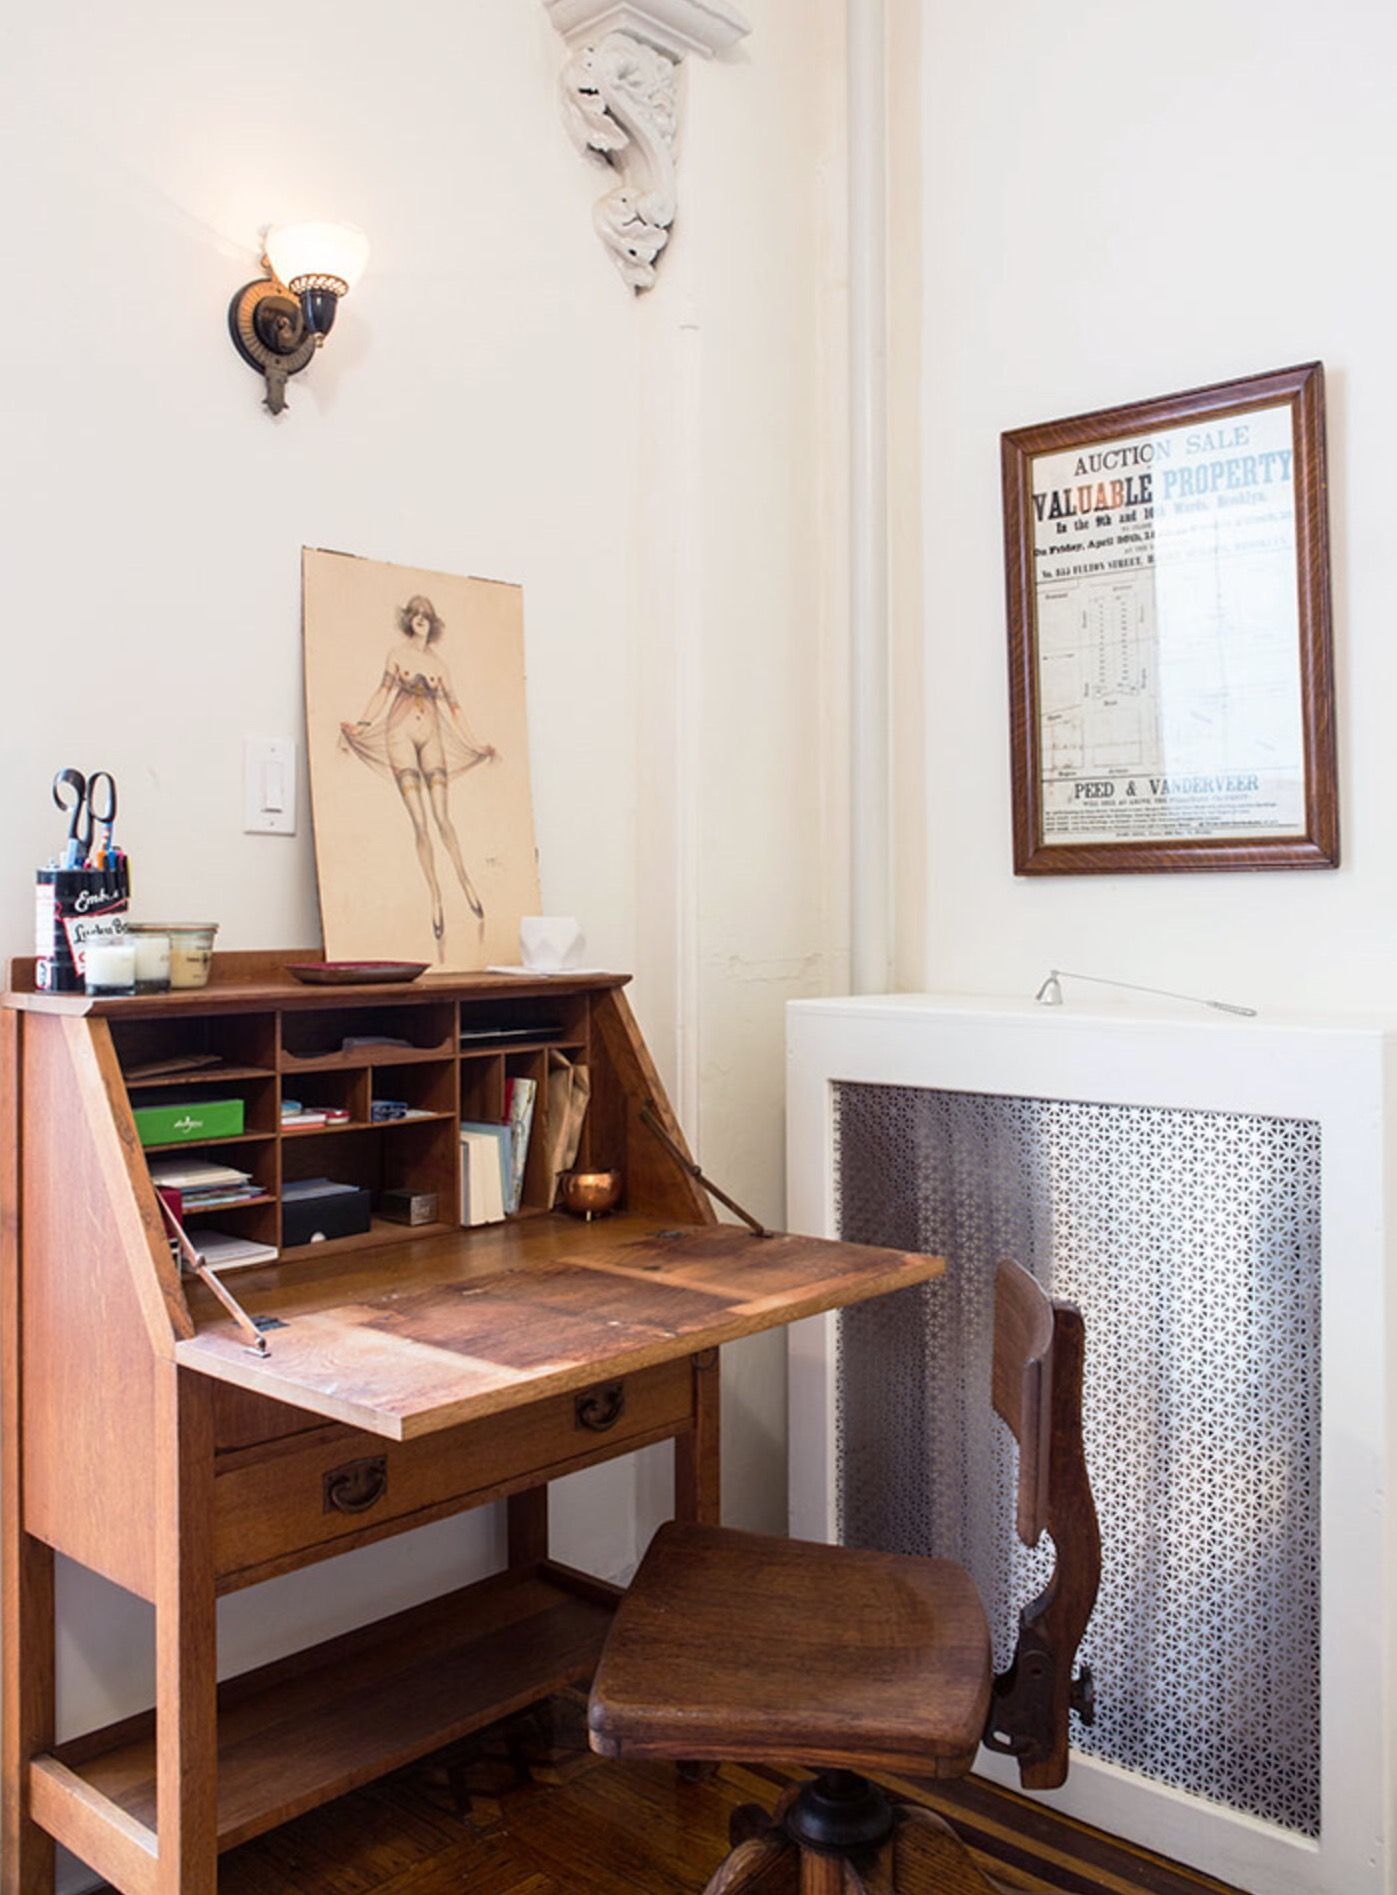 6 Of The Best Online Places To Buy Second Hand Furniture Catesthill Com